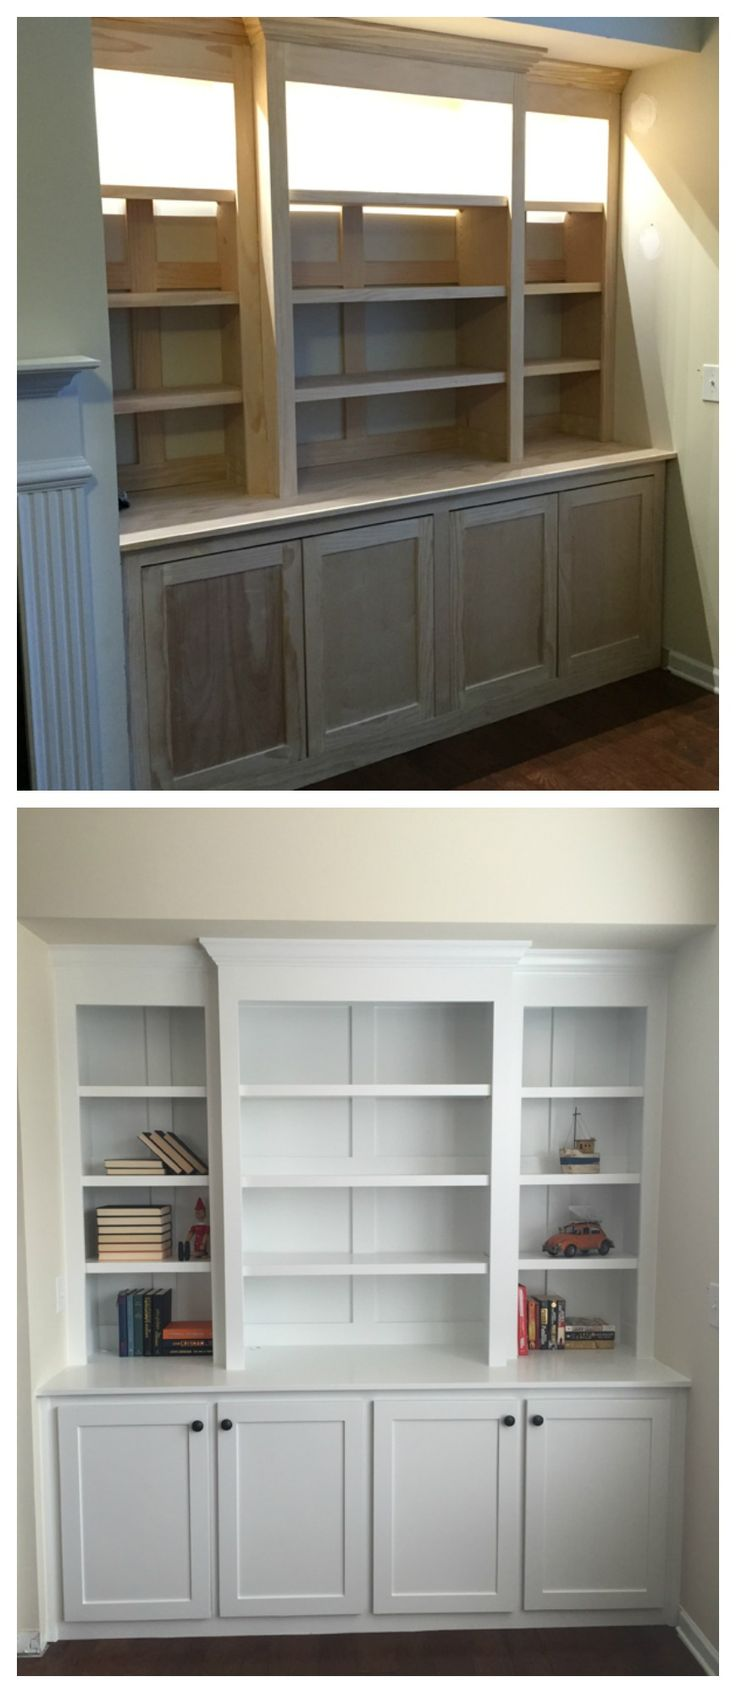 Best 25+ Built in shelves ideas on Pinterest | Built in cabinets ...